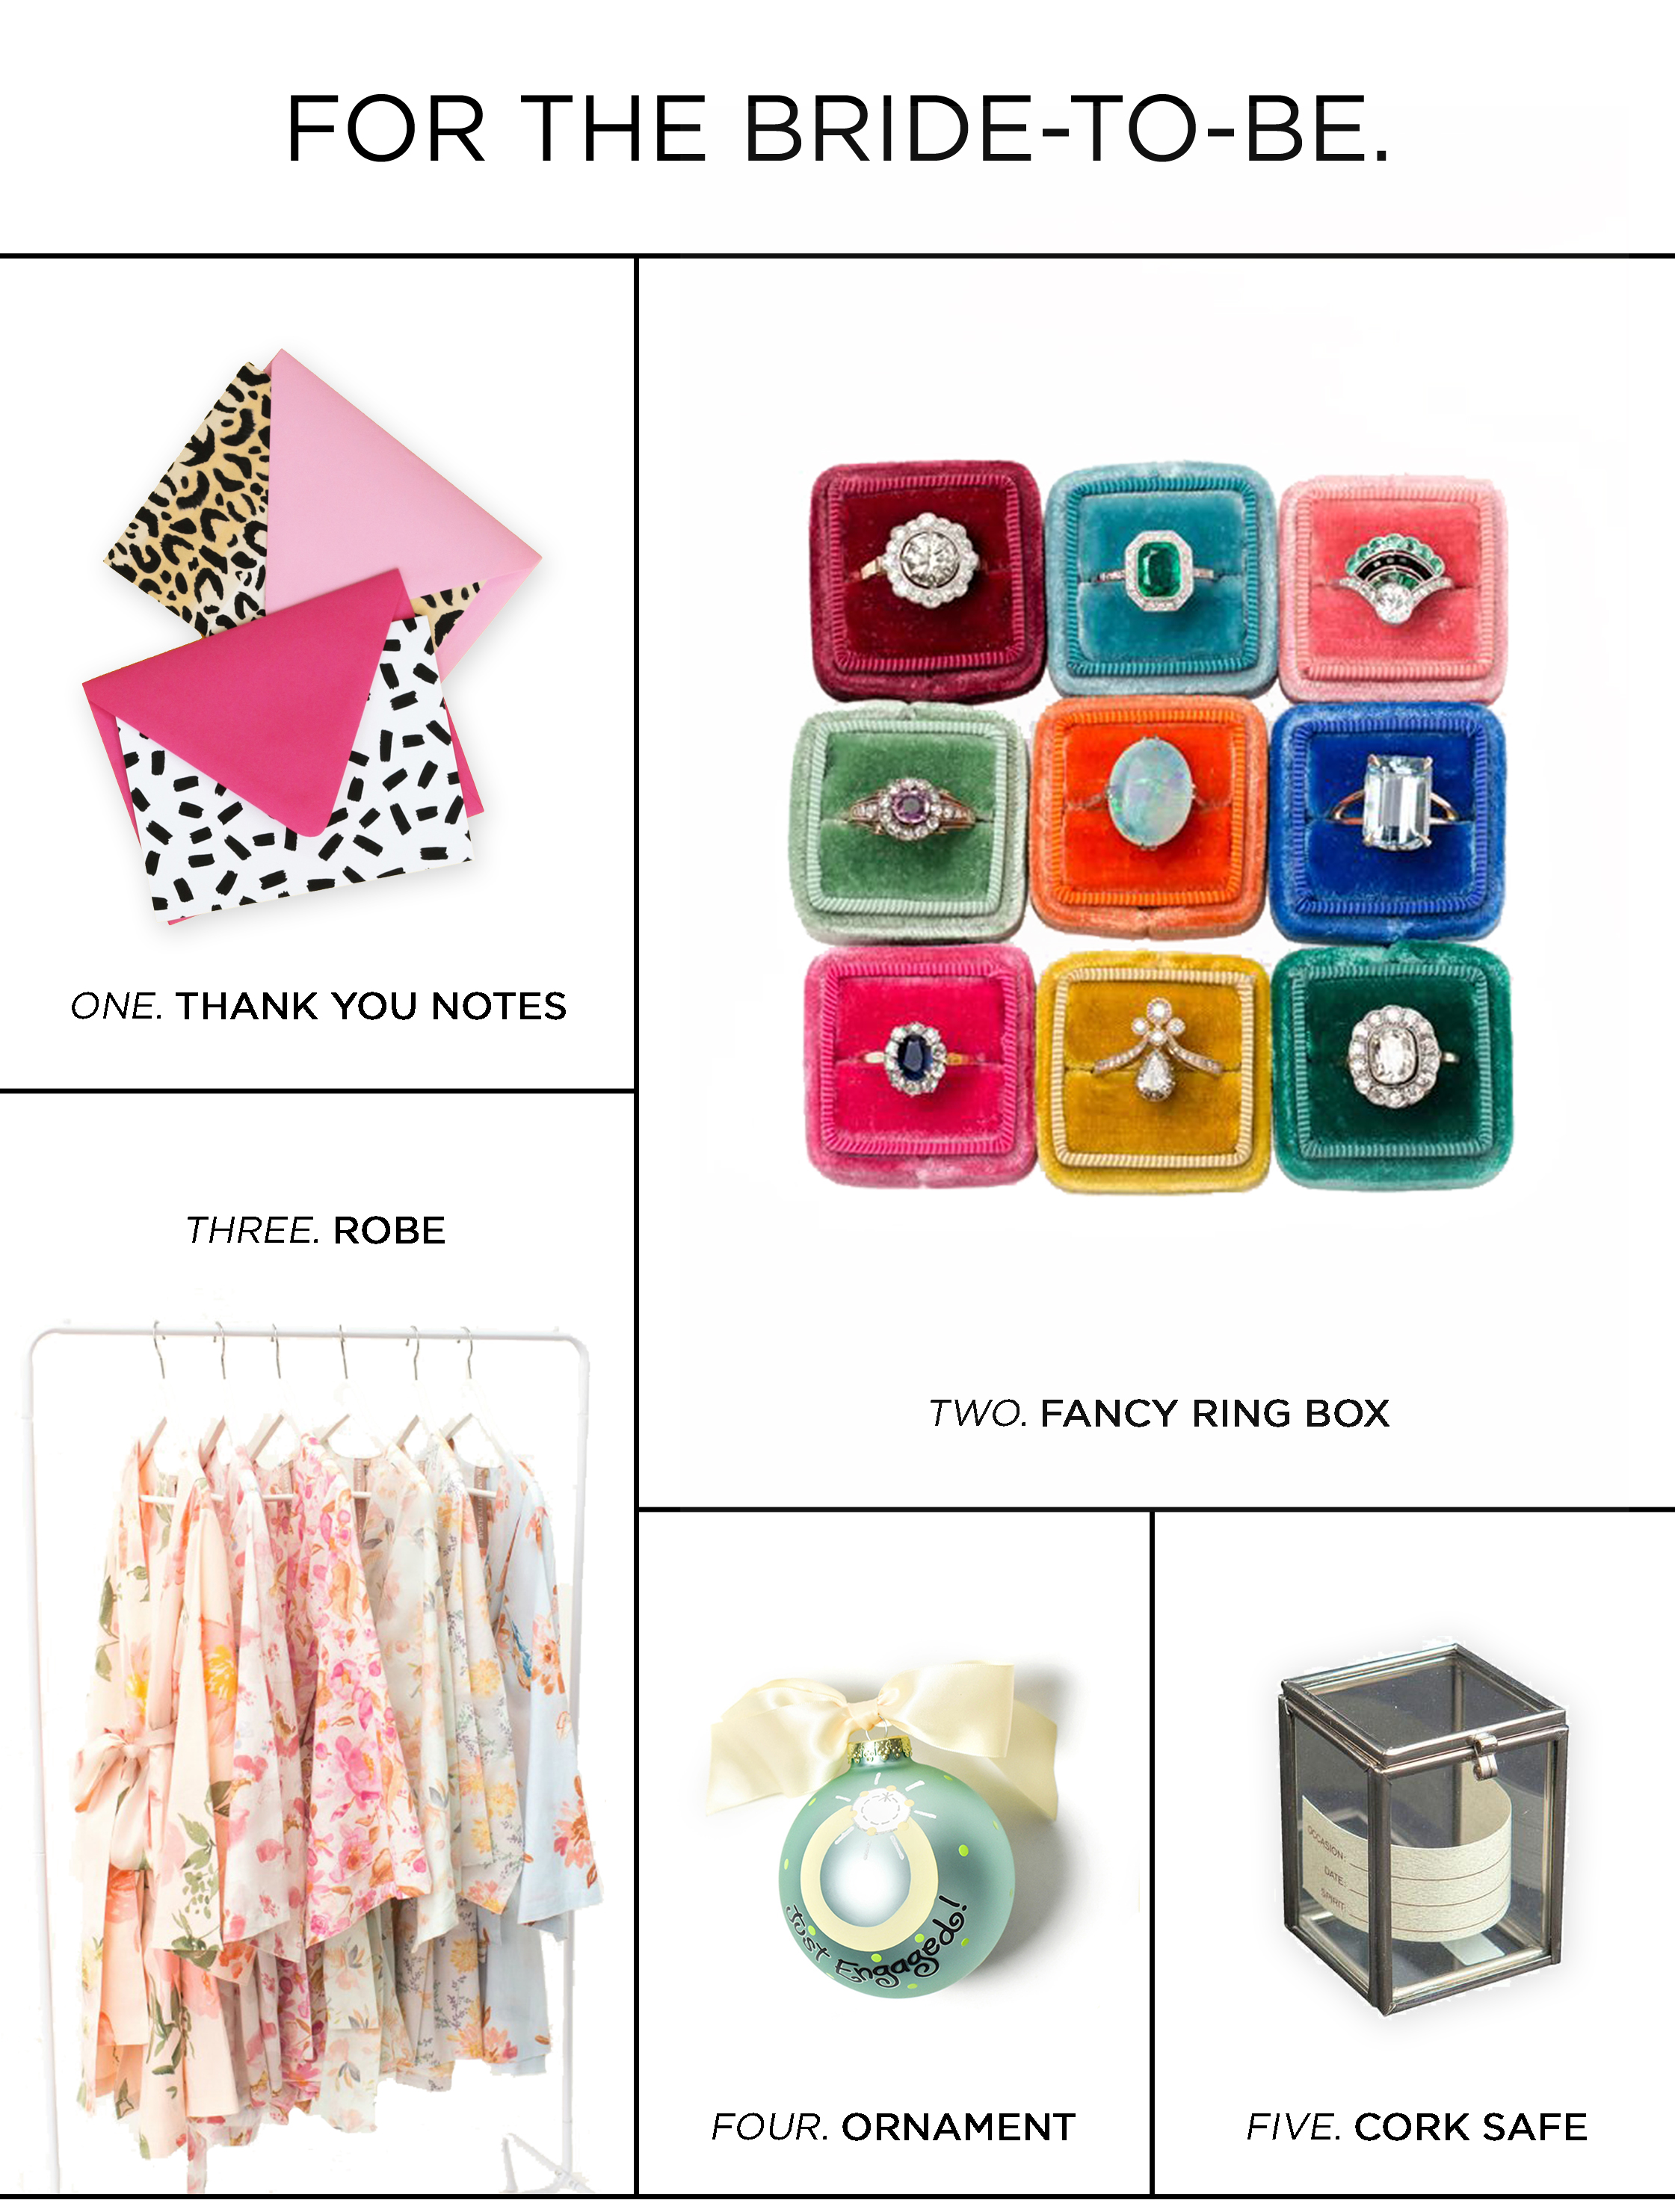 gift-guide-for-the-bride-to-be.jpg